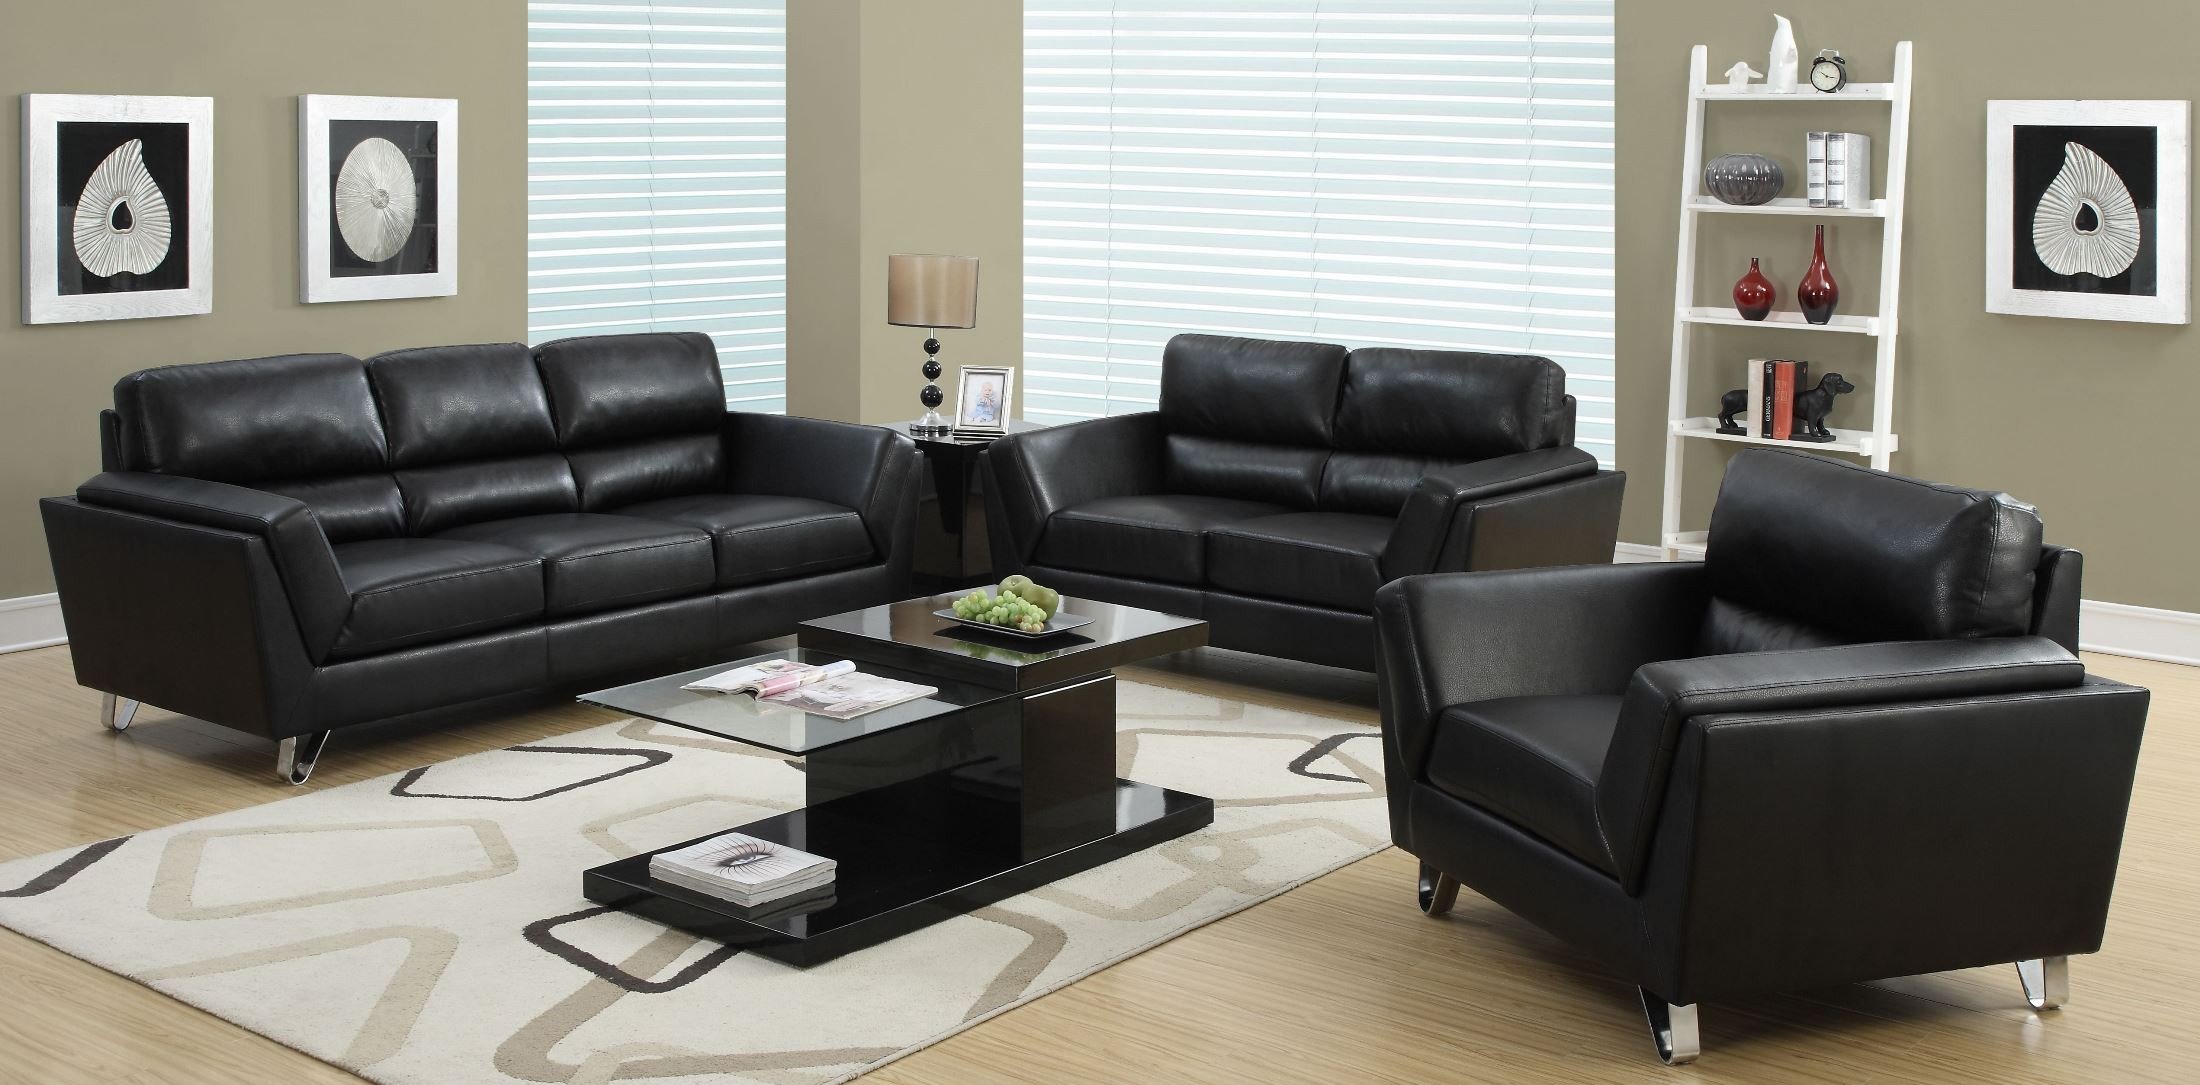 Black bonded leather match living room set from monarch for Black living room set